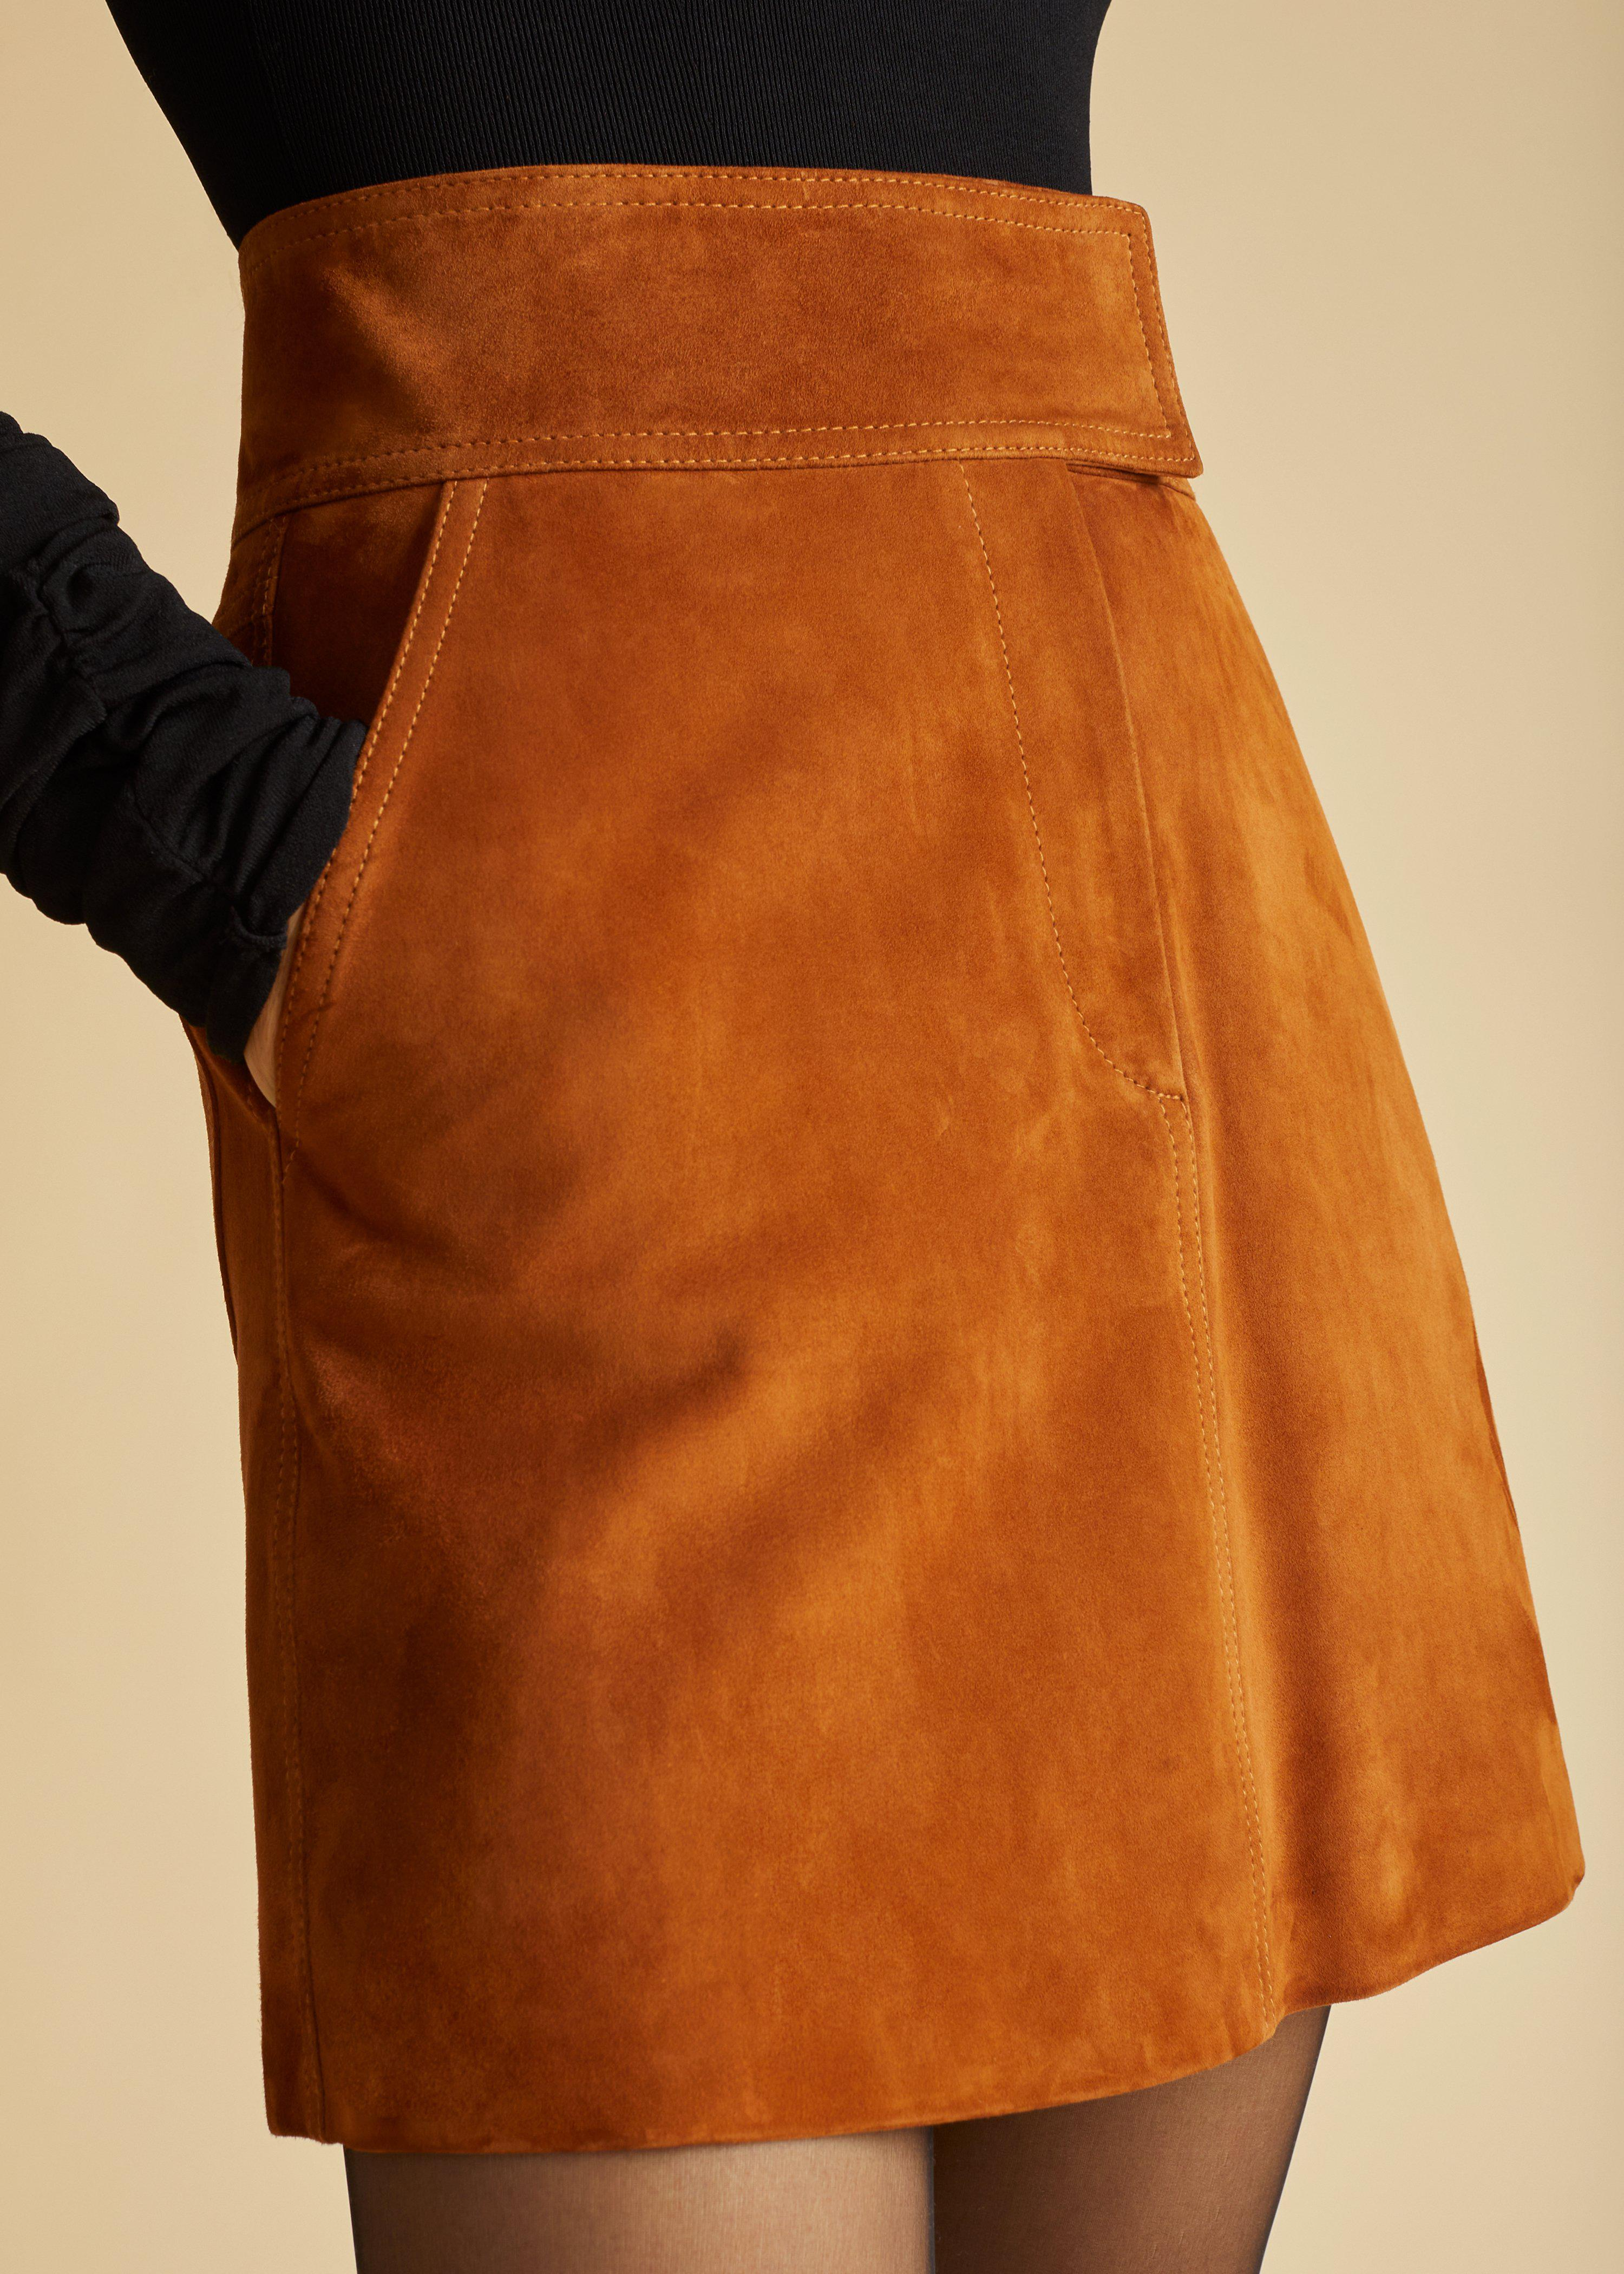 The Giulia Skirt in Chestnut Suede 3